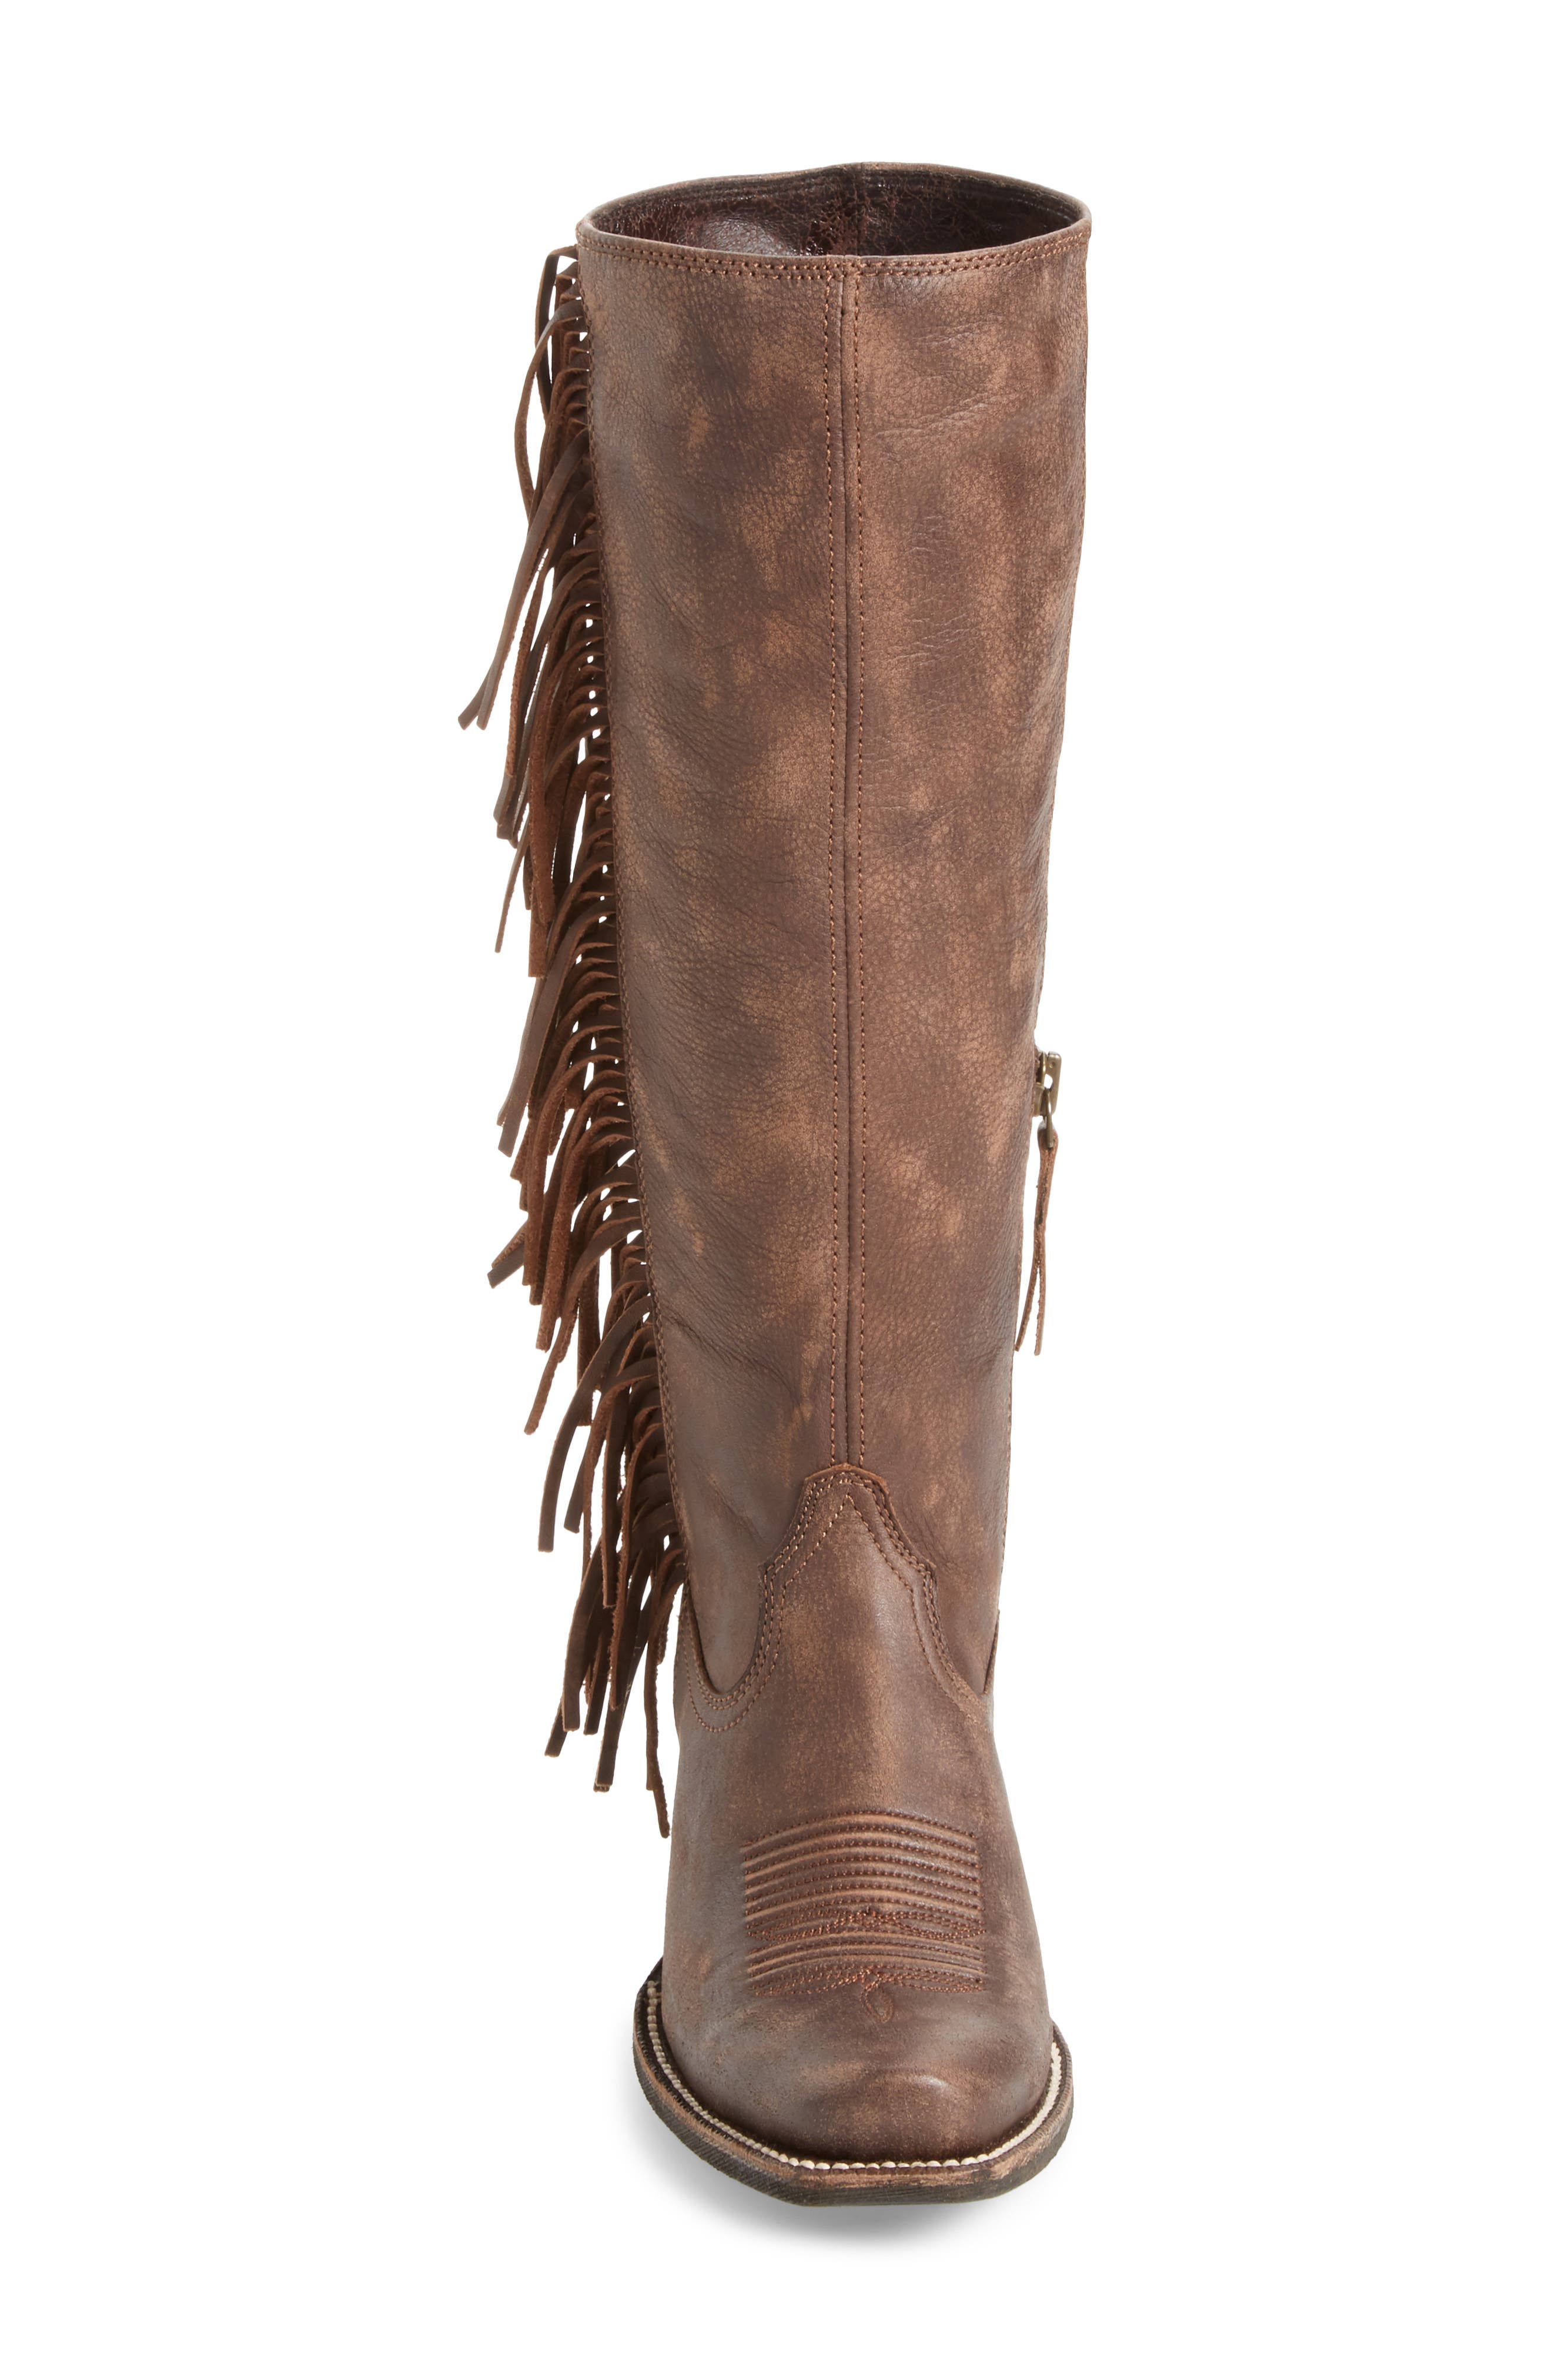 Leyton Fringe Western Boot,                             Alternate thumbnail 4, color,                             TACK ROOM CHOCOLATE LEATHER